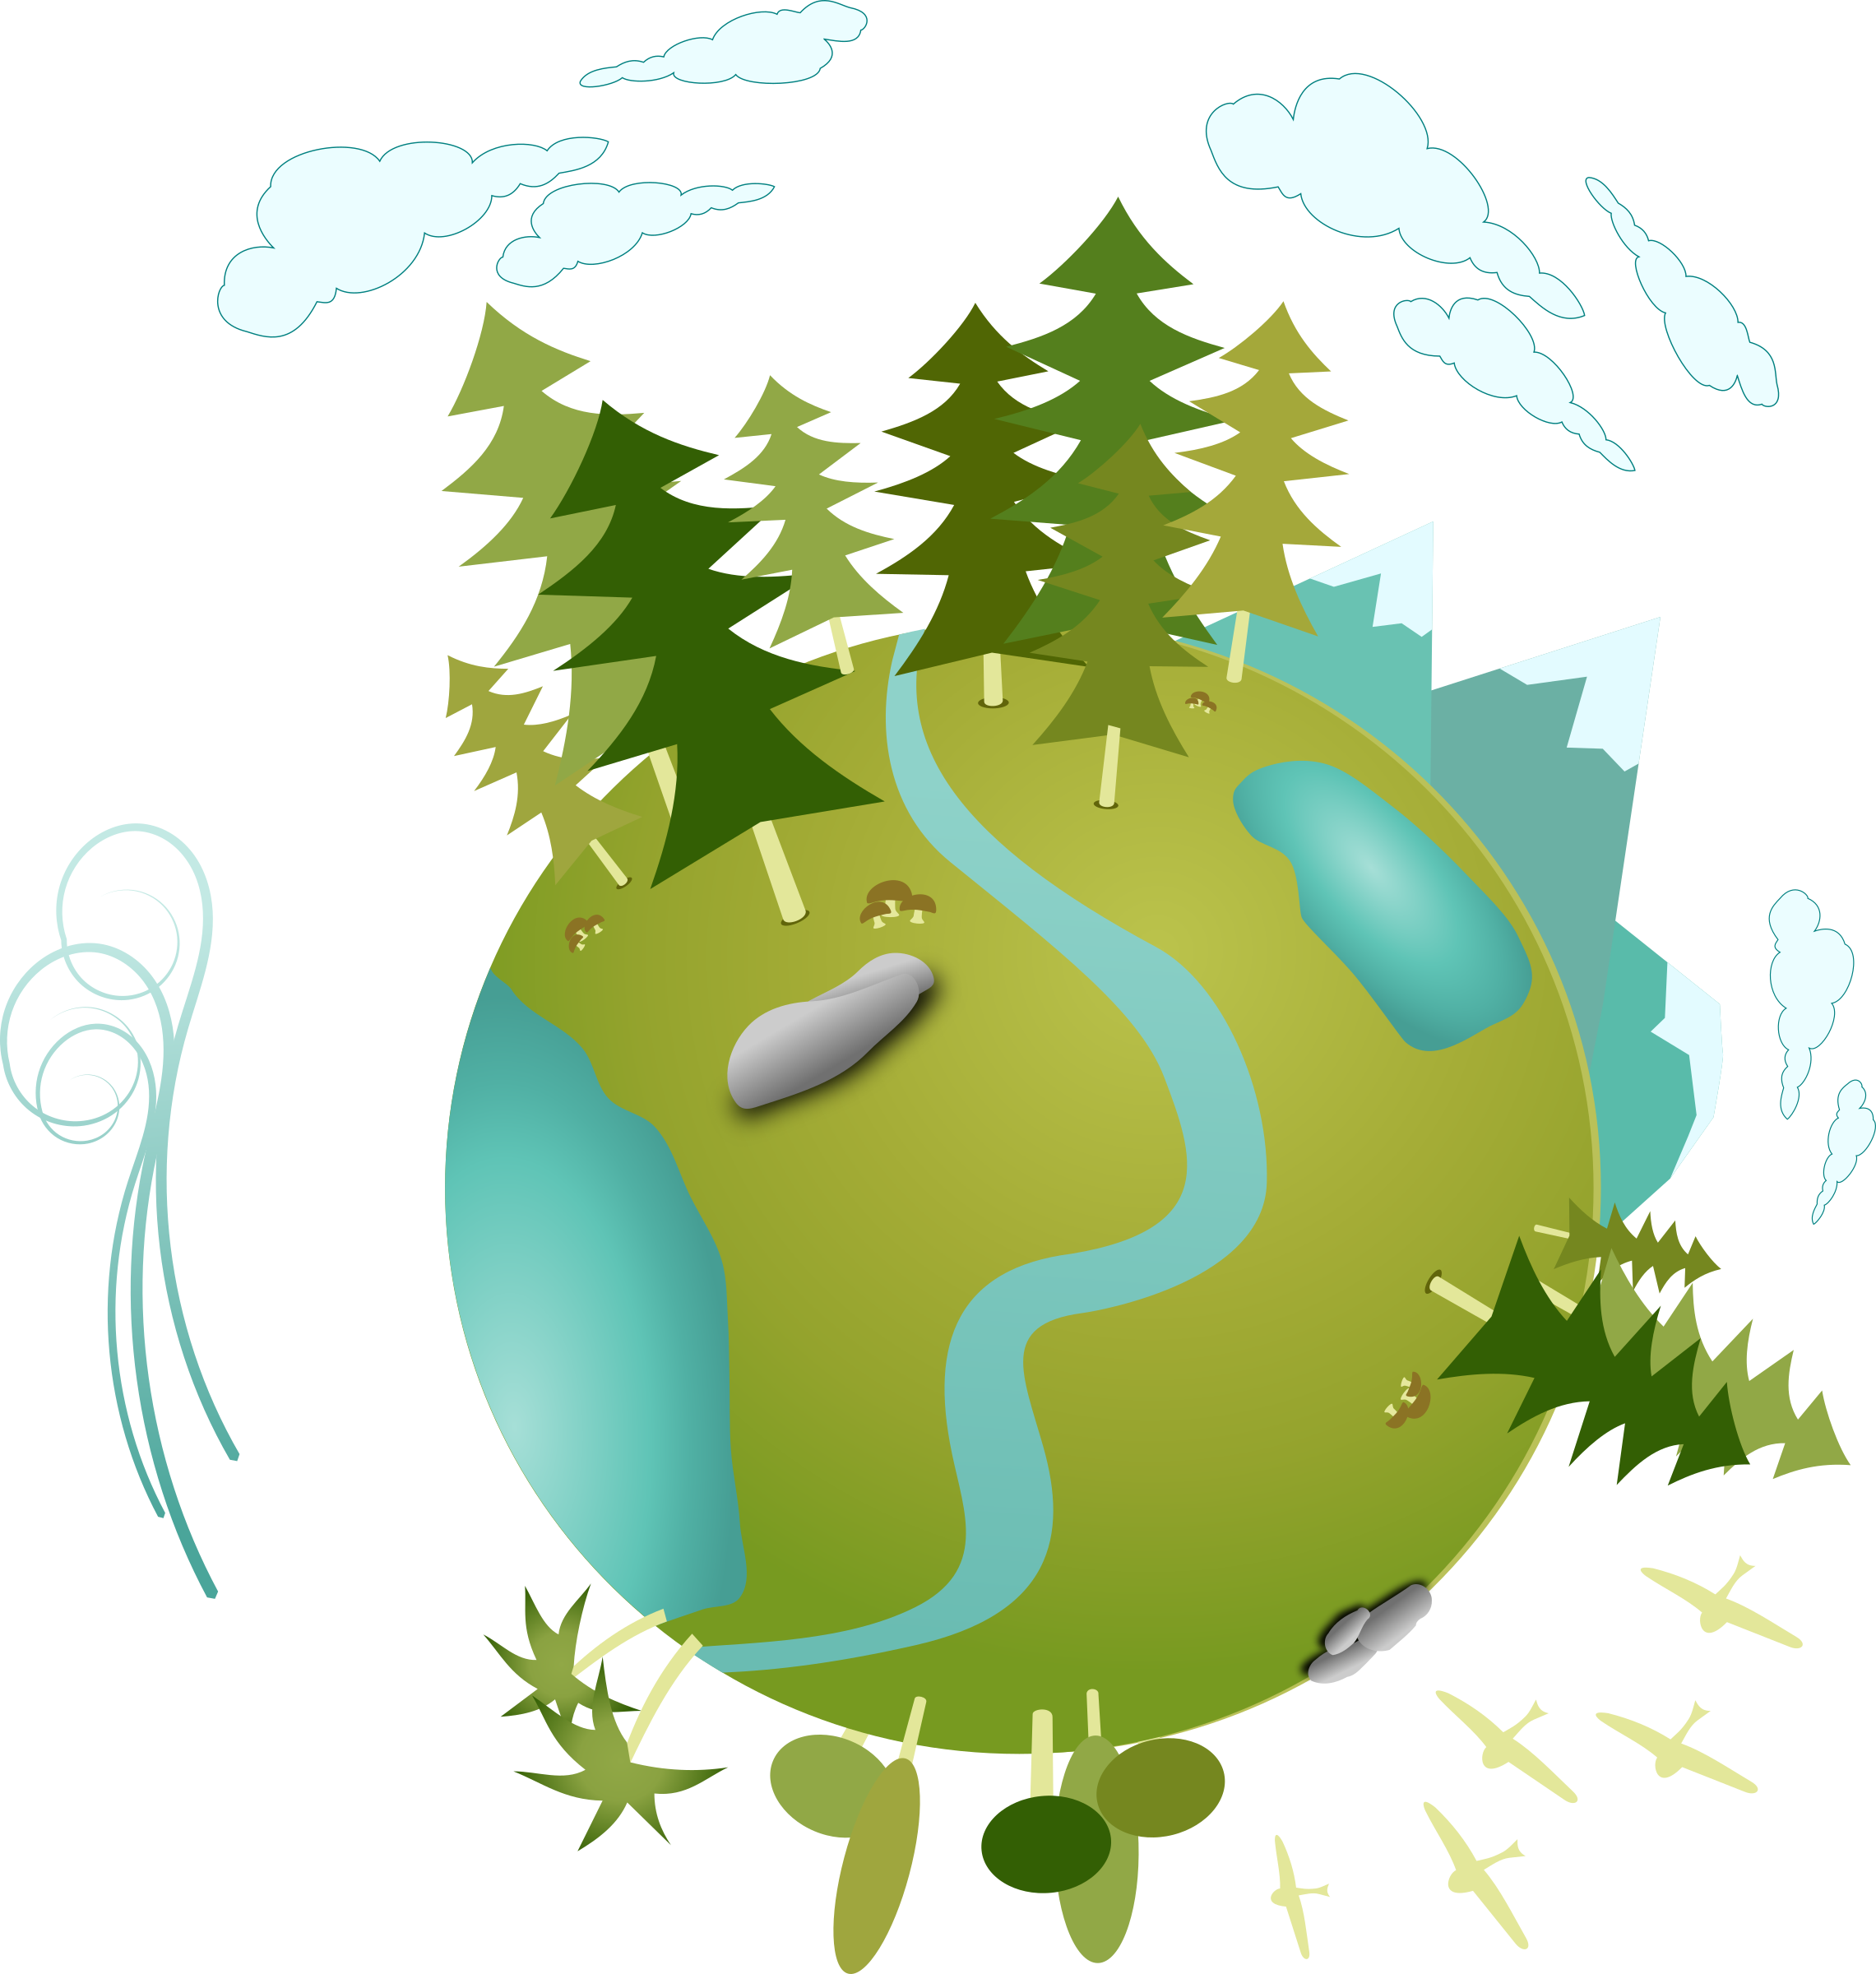 Big image png. Planet clipart green planet